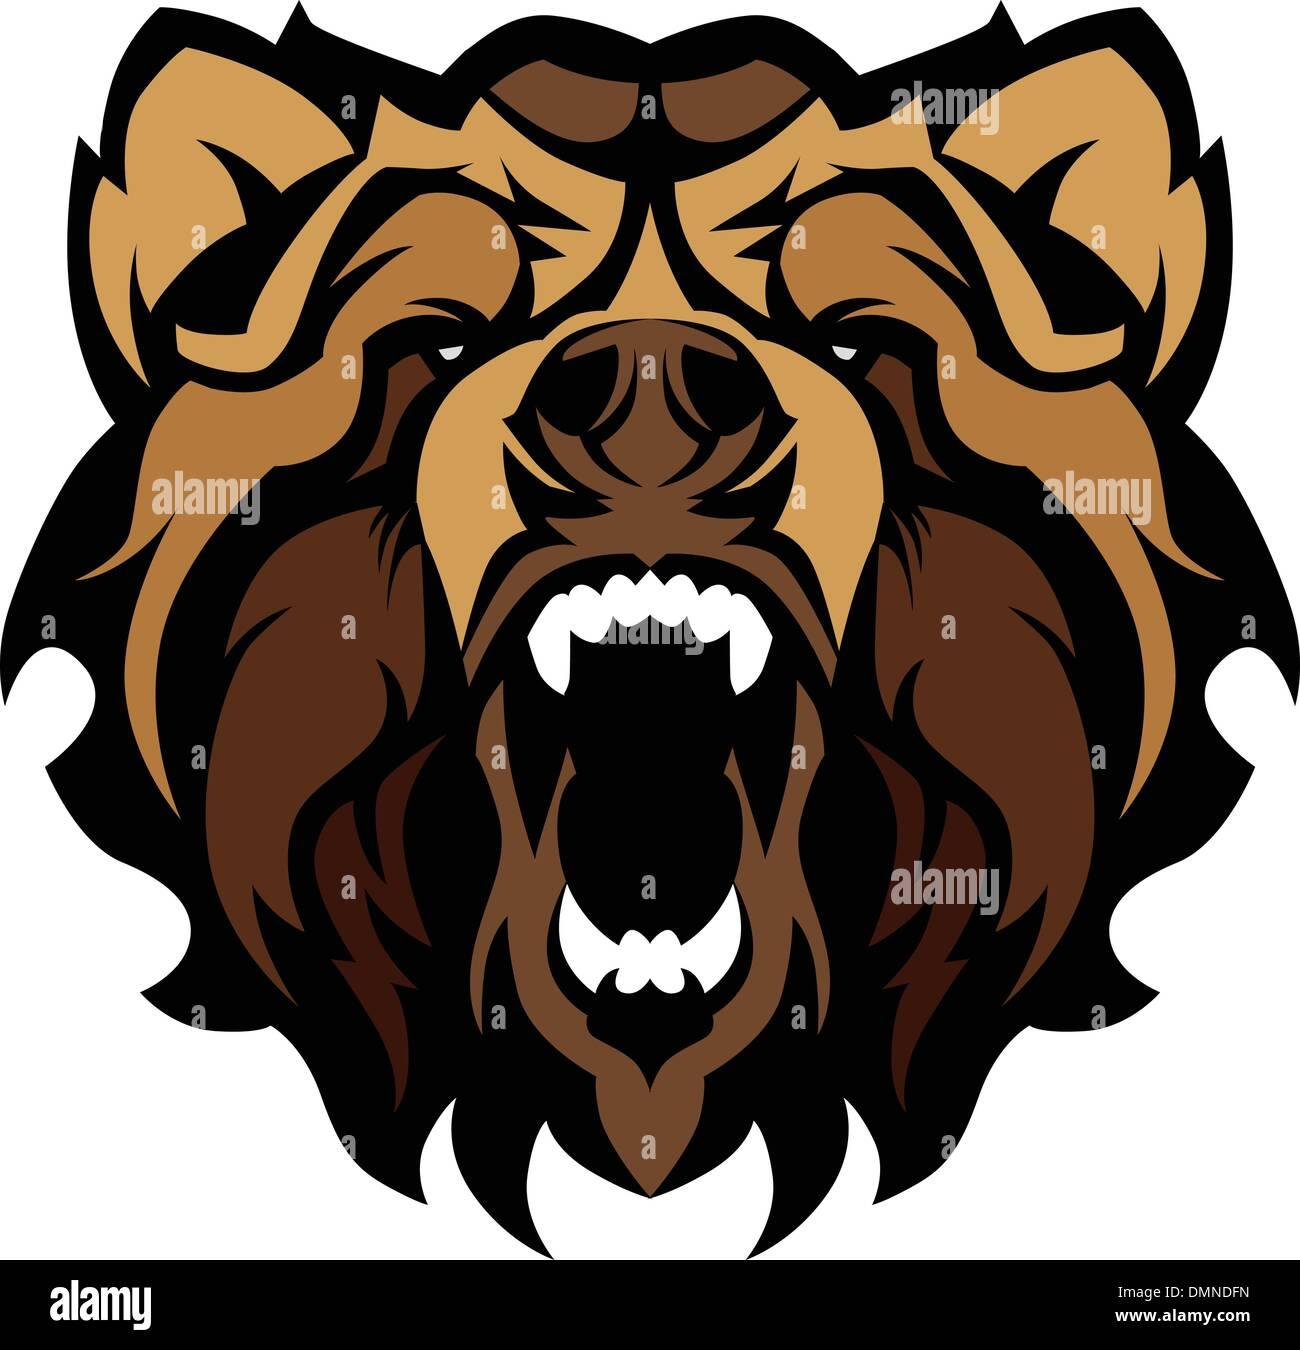 hight resolution of grizzly bear mascot graphic vector illustration stock image